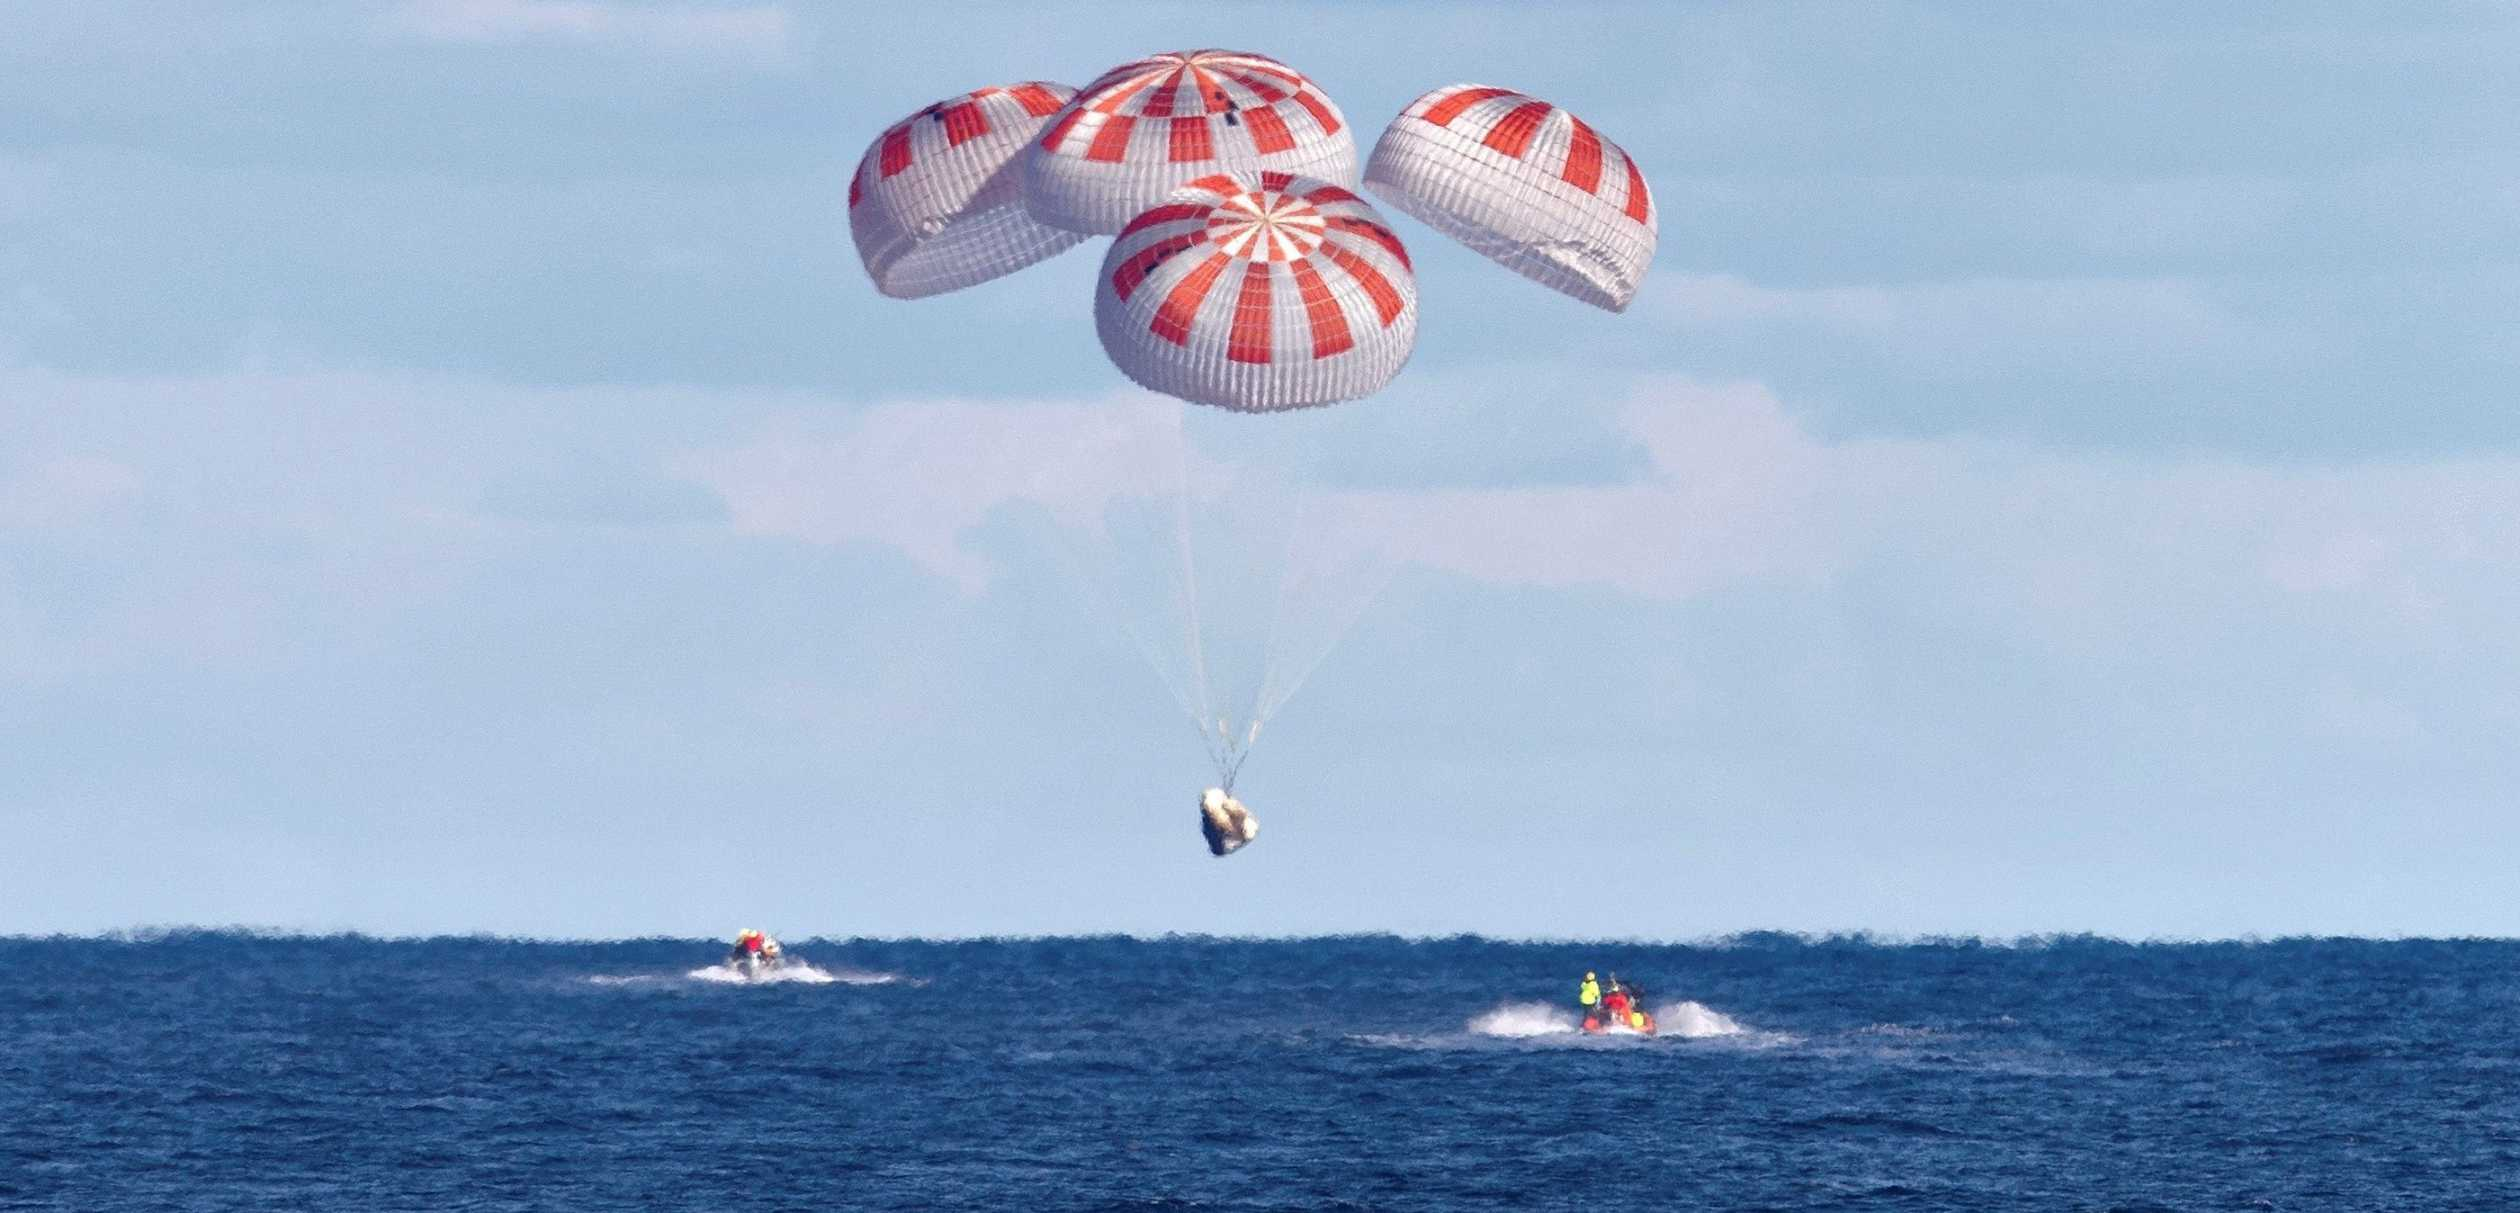 Crew Dragon DM-1 parachute splashdown 030819 (NASA) 5 crop 3(c)